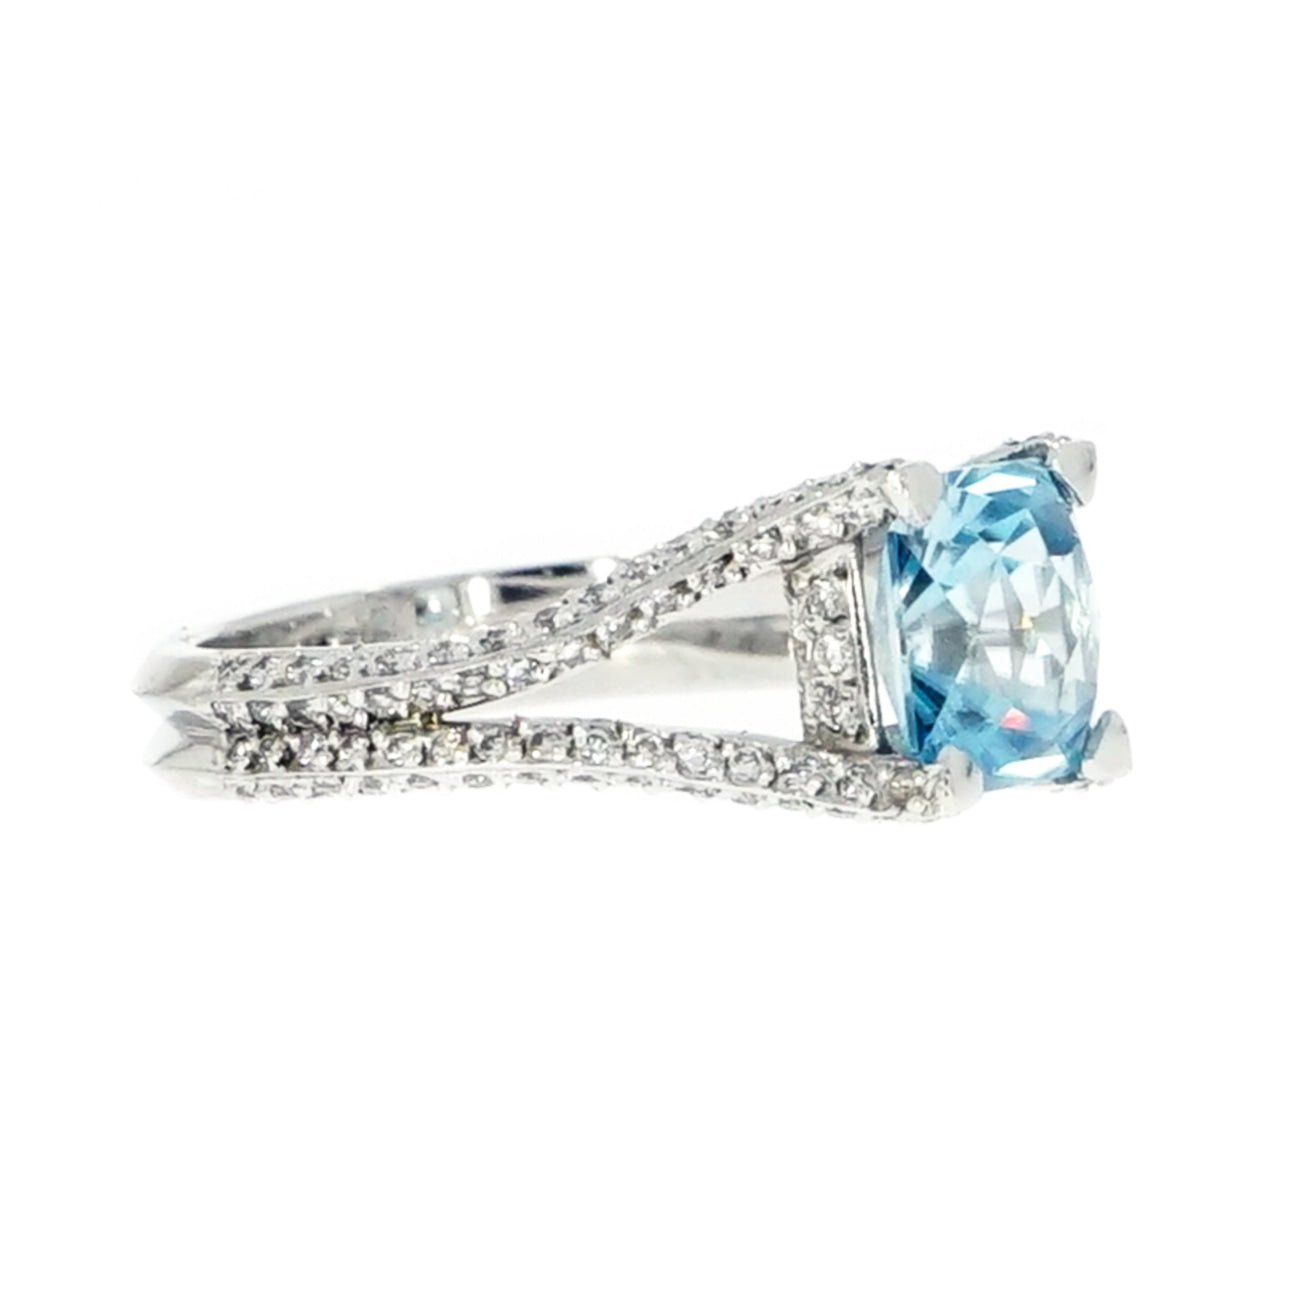 Manfredi Jewels Jewelry - Blue Zircon & Diamond Platinum Ring | Manfredi Jewels